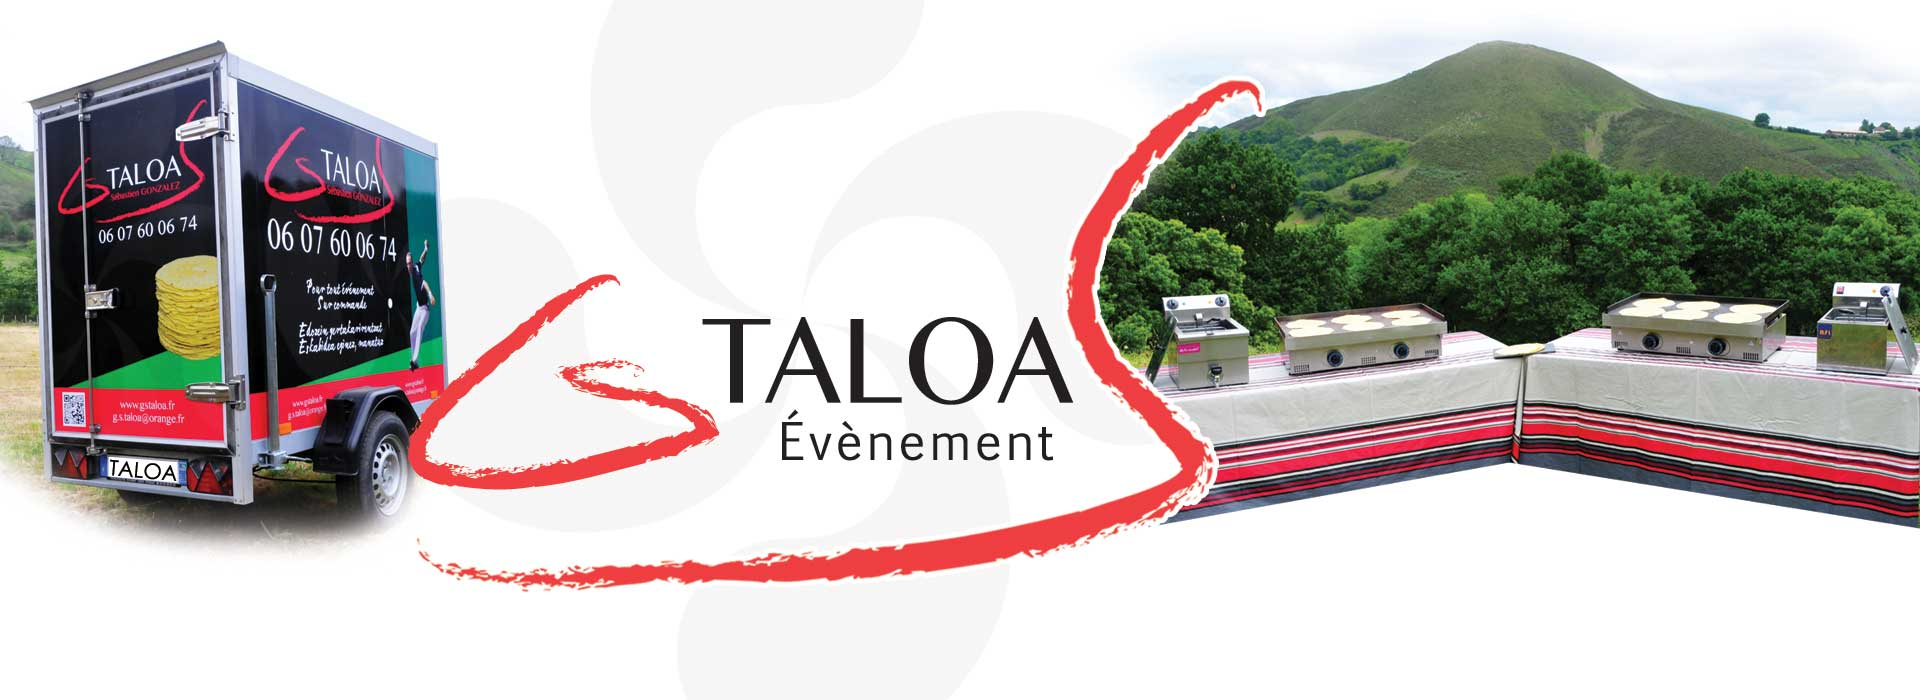 gs-taloa-accompagne-evenement-slide-grand